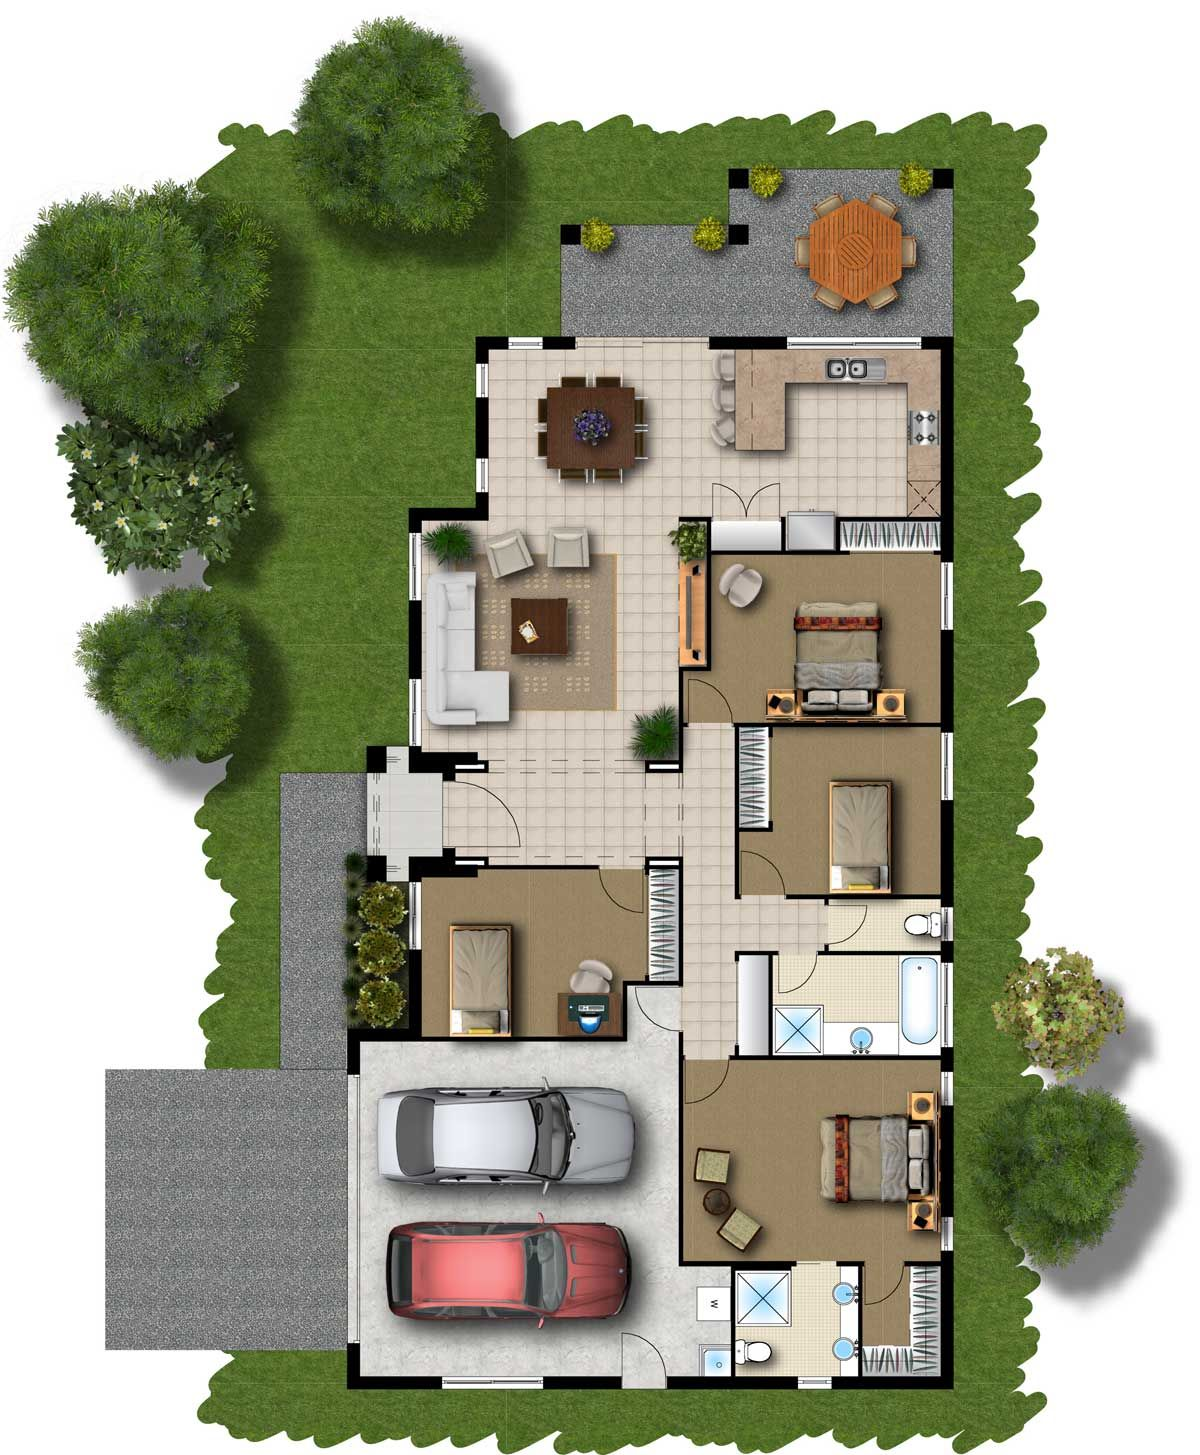 Swell 17 Best Images About Home Design On Pinterest House Plans New Largest Home Design Picture Inspirations Pitcheantrous